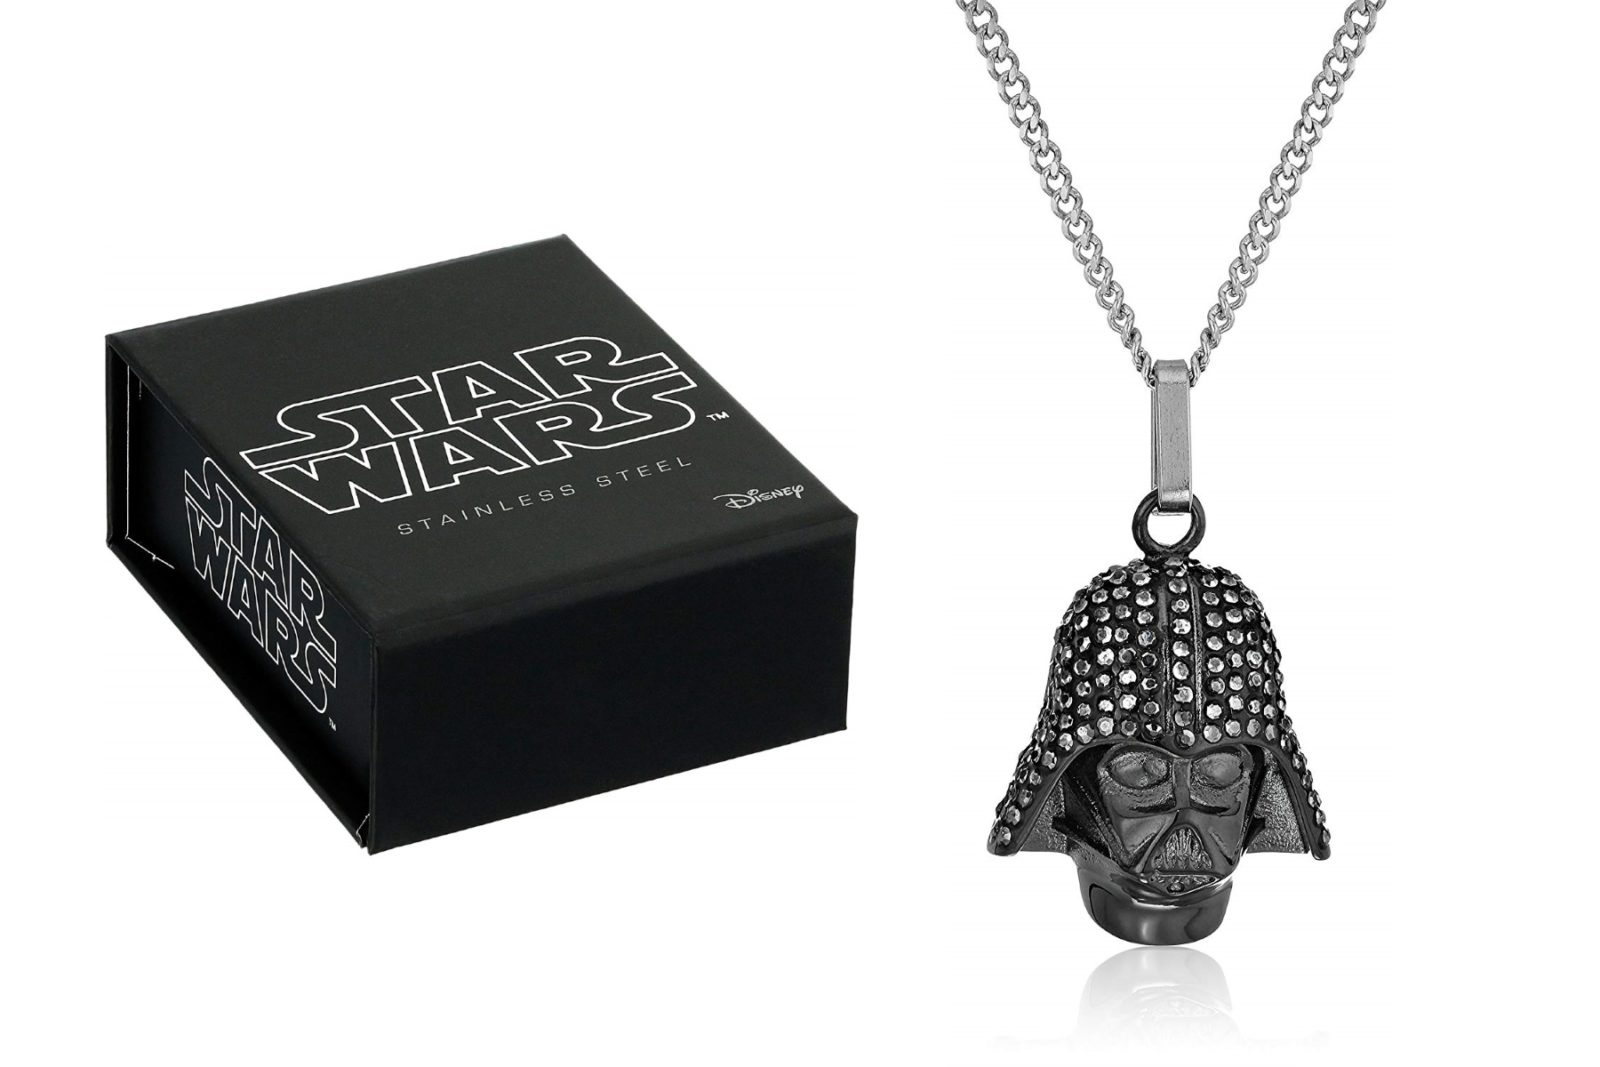 Star Wars Darth Vader Rhinestone Necklace